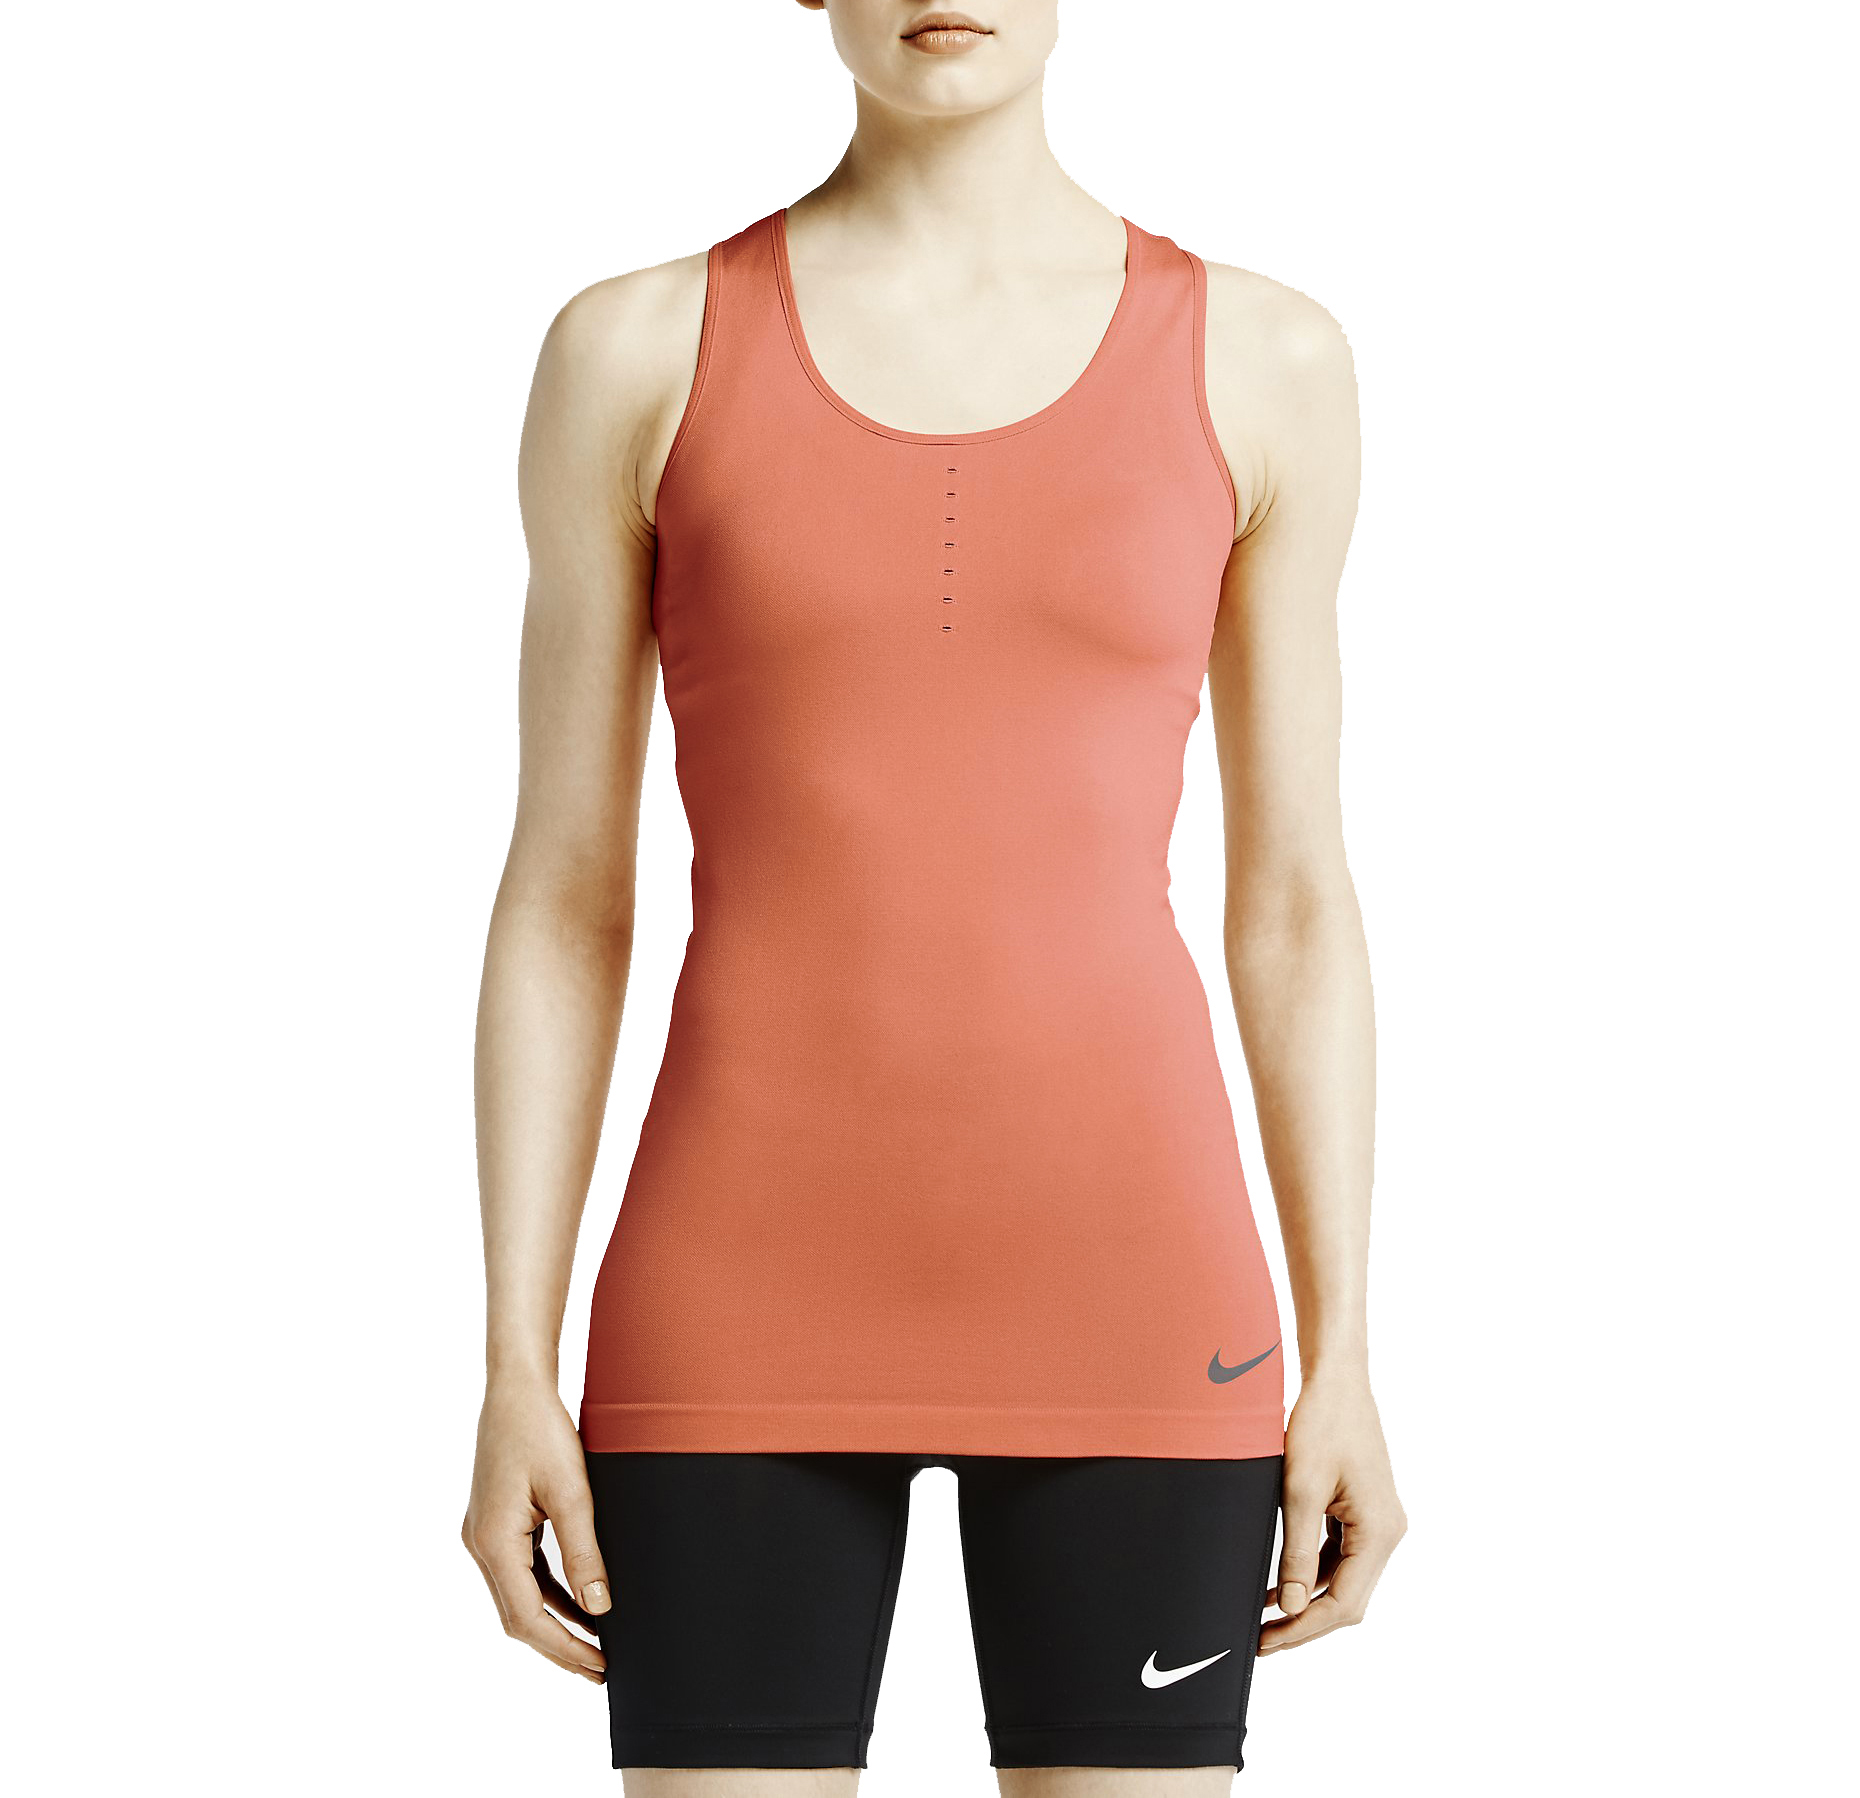 4e5ba52063046 Nike Women s Dri-Fit Pro Hypercool Limitless Training Tank Top ...